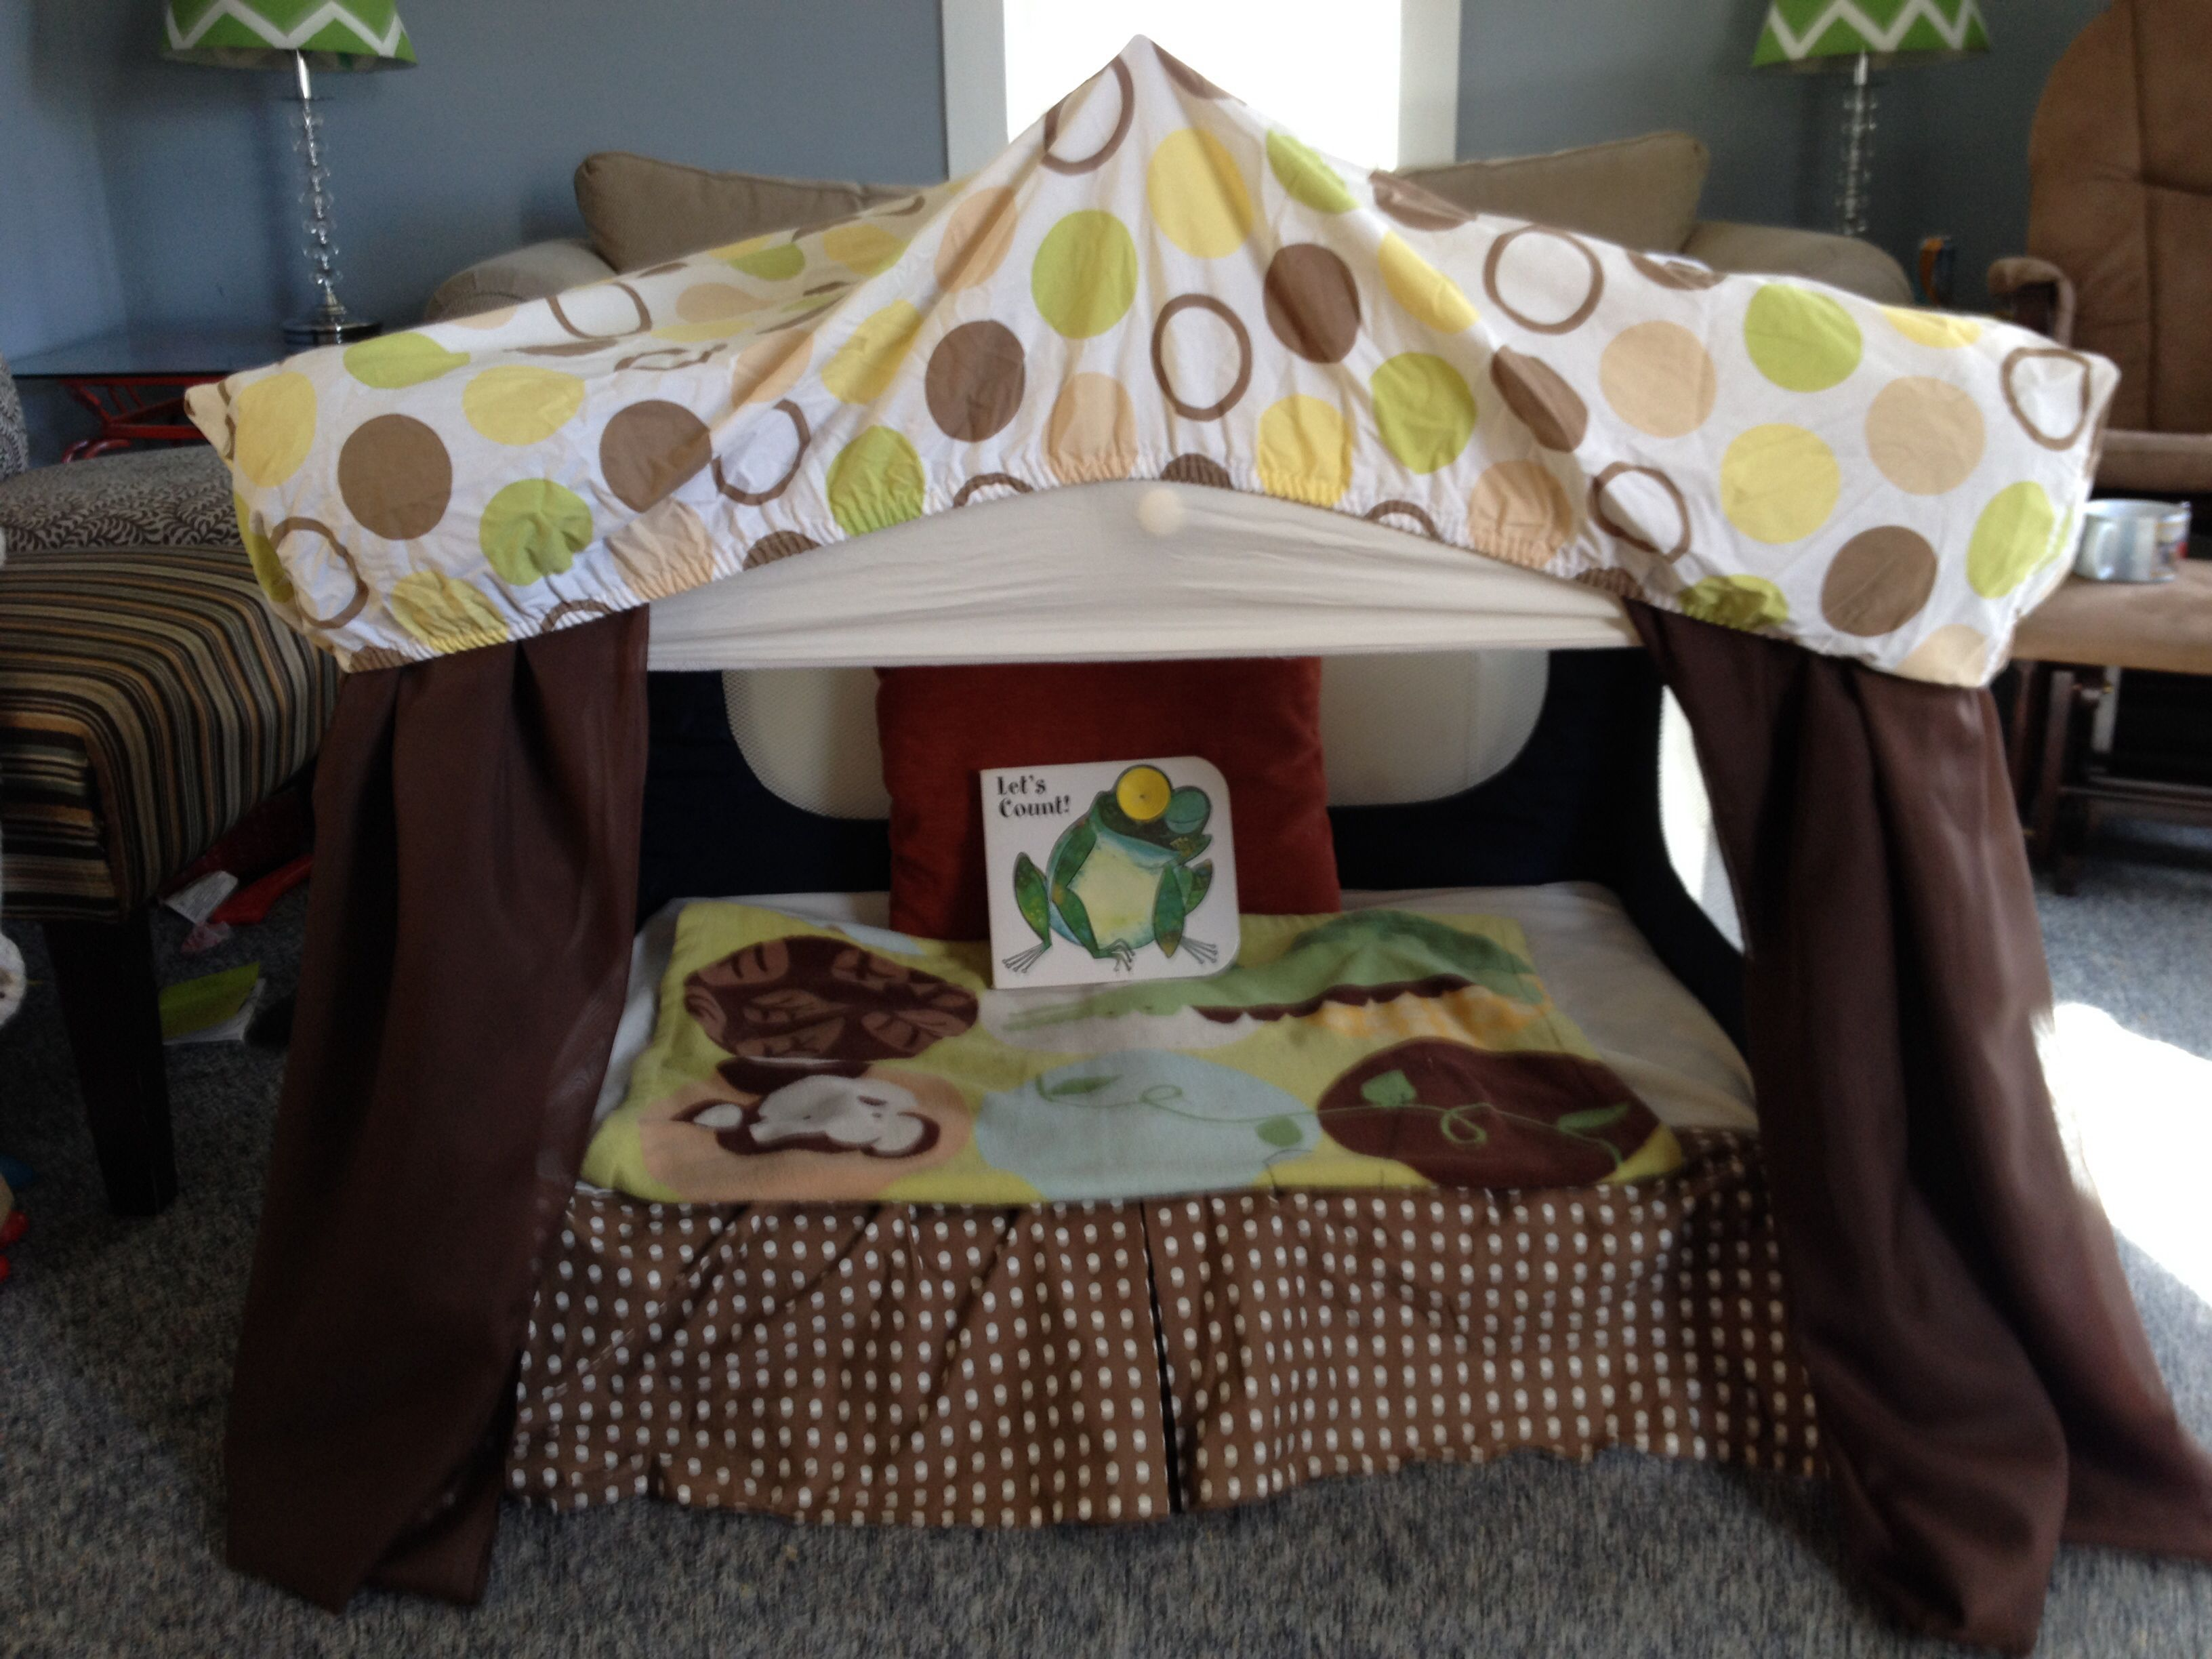 I repurposed the old pack and play into a reading tent! & I repurposed the old pack and play into a reading tent! | Fresh ...